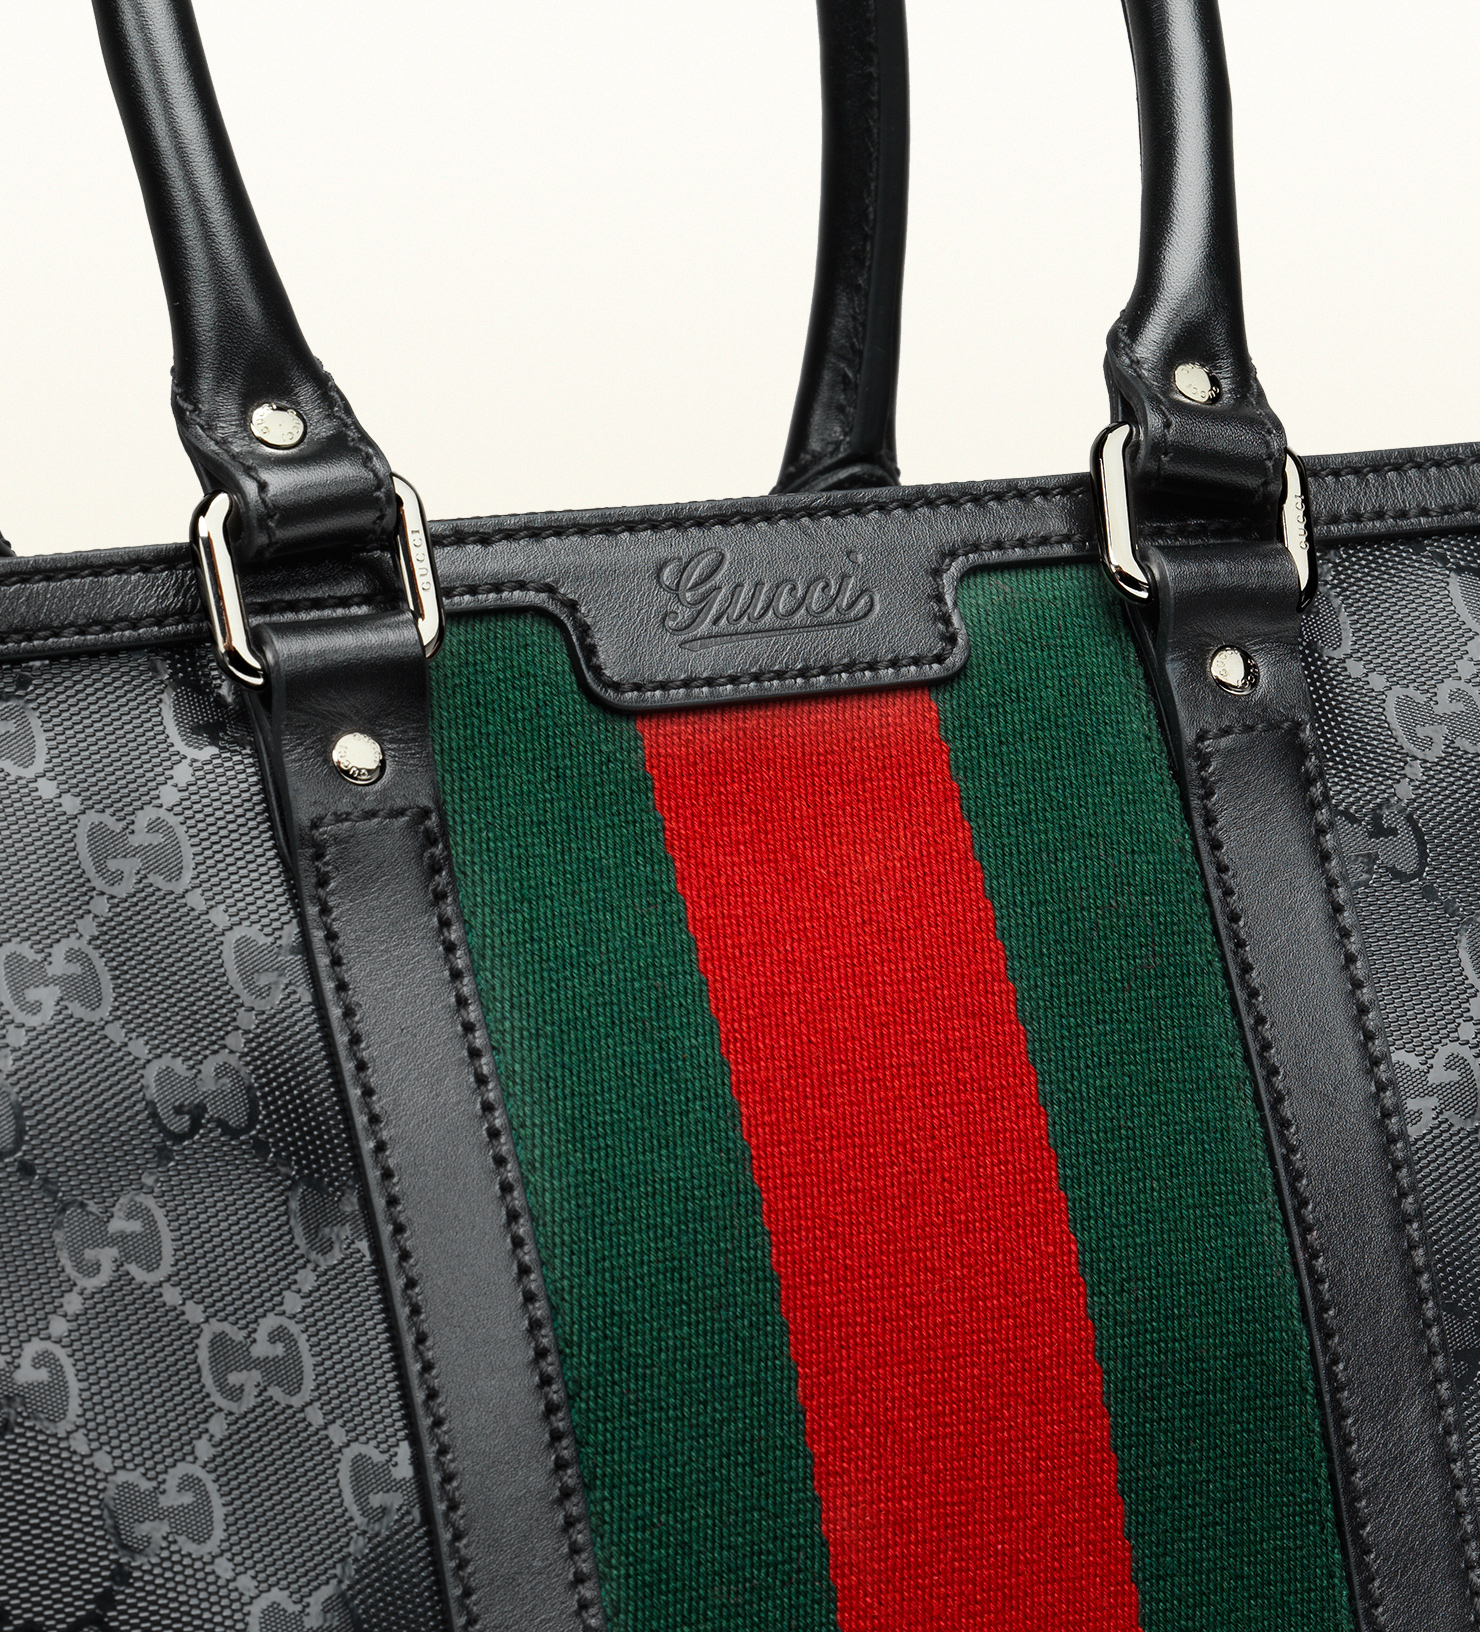 ddb89918cdb Gucci Purse With Red And Green Strap - Best Purse Image Ccdbb.Org